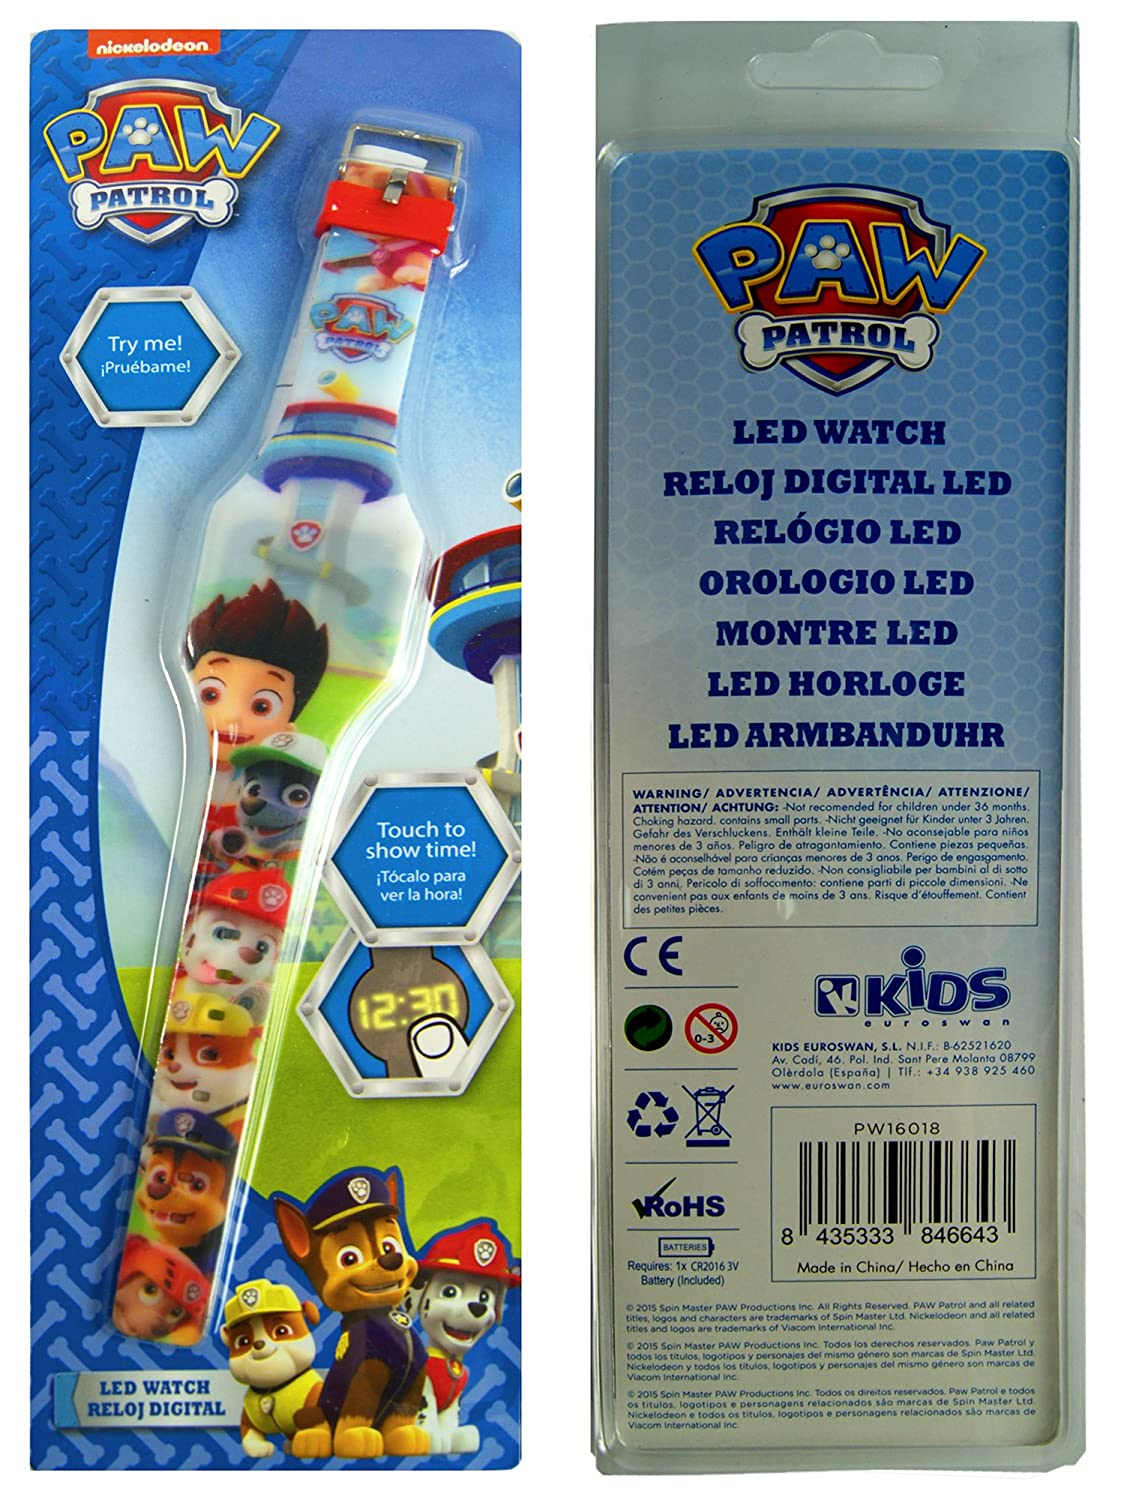 Amazon.com: Paw Patrol LED Digital Watch,,Touch To Show Time,, Official Licensed .: Toys & Games